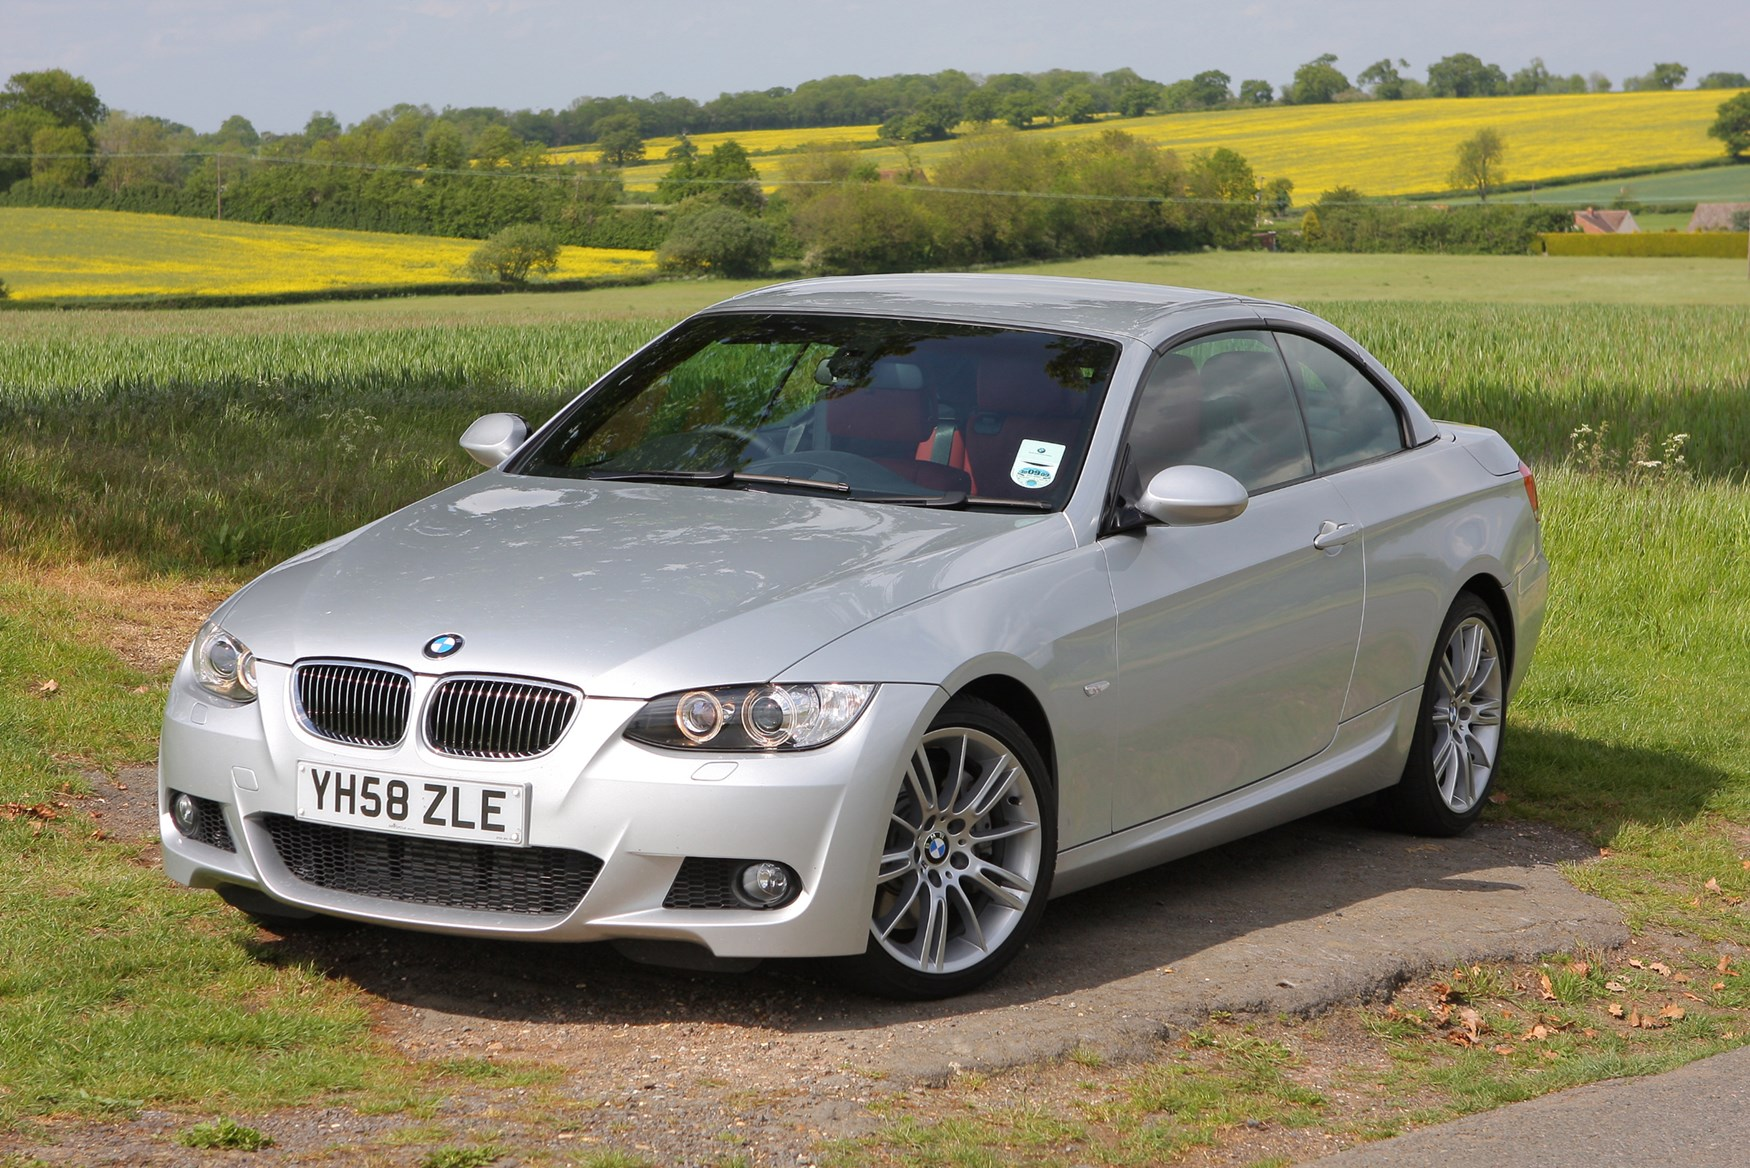 Bmw 335i For Sale >> BMW 3-Series Convertible Review (2007 - 2013) | Parkers